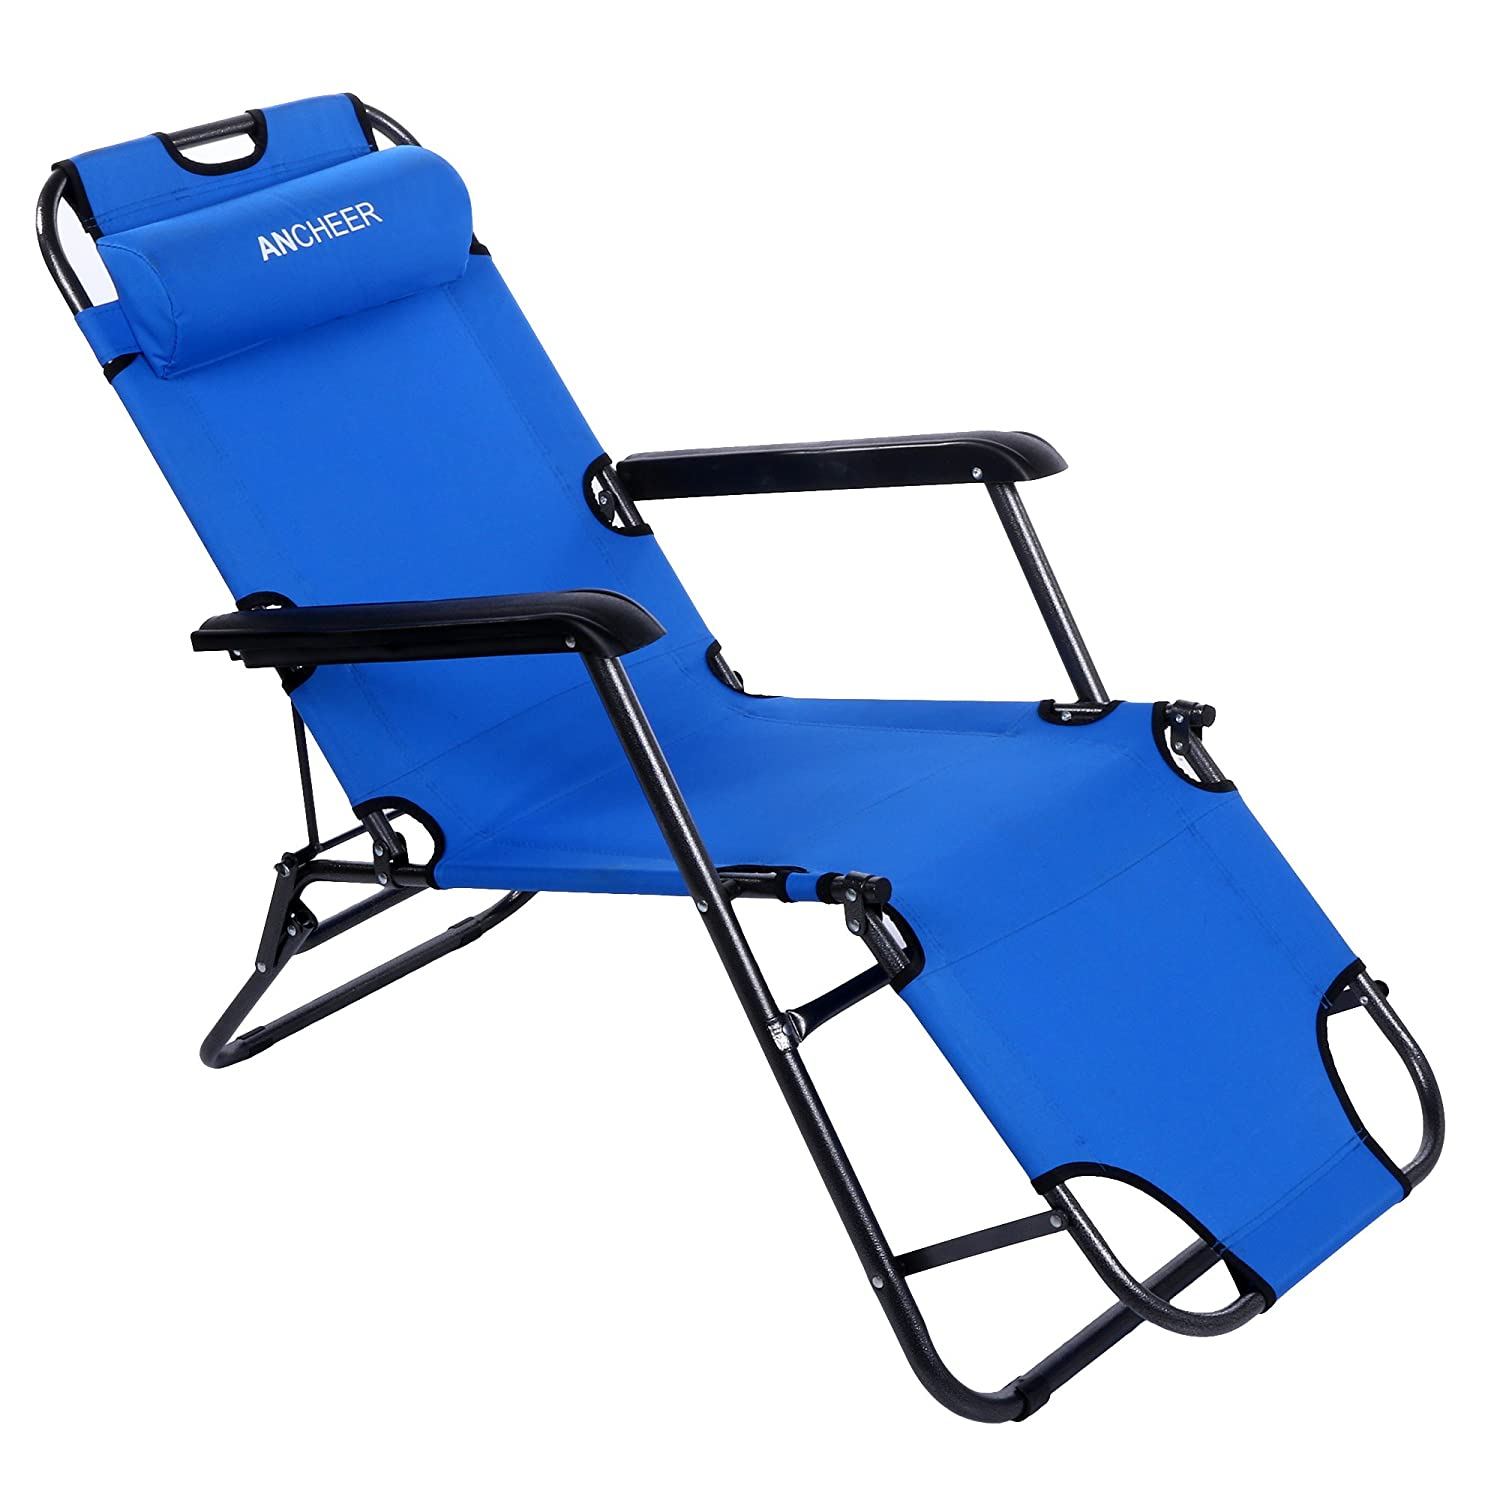 Amazon.com Ancheer Outdoor Lounge Chaise Beach Recliner Patio Chair with Steel Construction and 600D Breathable Polyester Fabric -Adjustable Pillow ...  sc 1 st  Amazon.com & Amazon.com: Ancheer Outdoor Lounge Chaise Beach Recliner Patio ... islam-shia.org